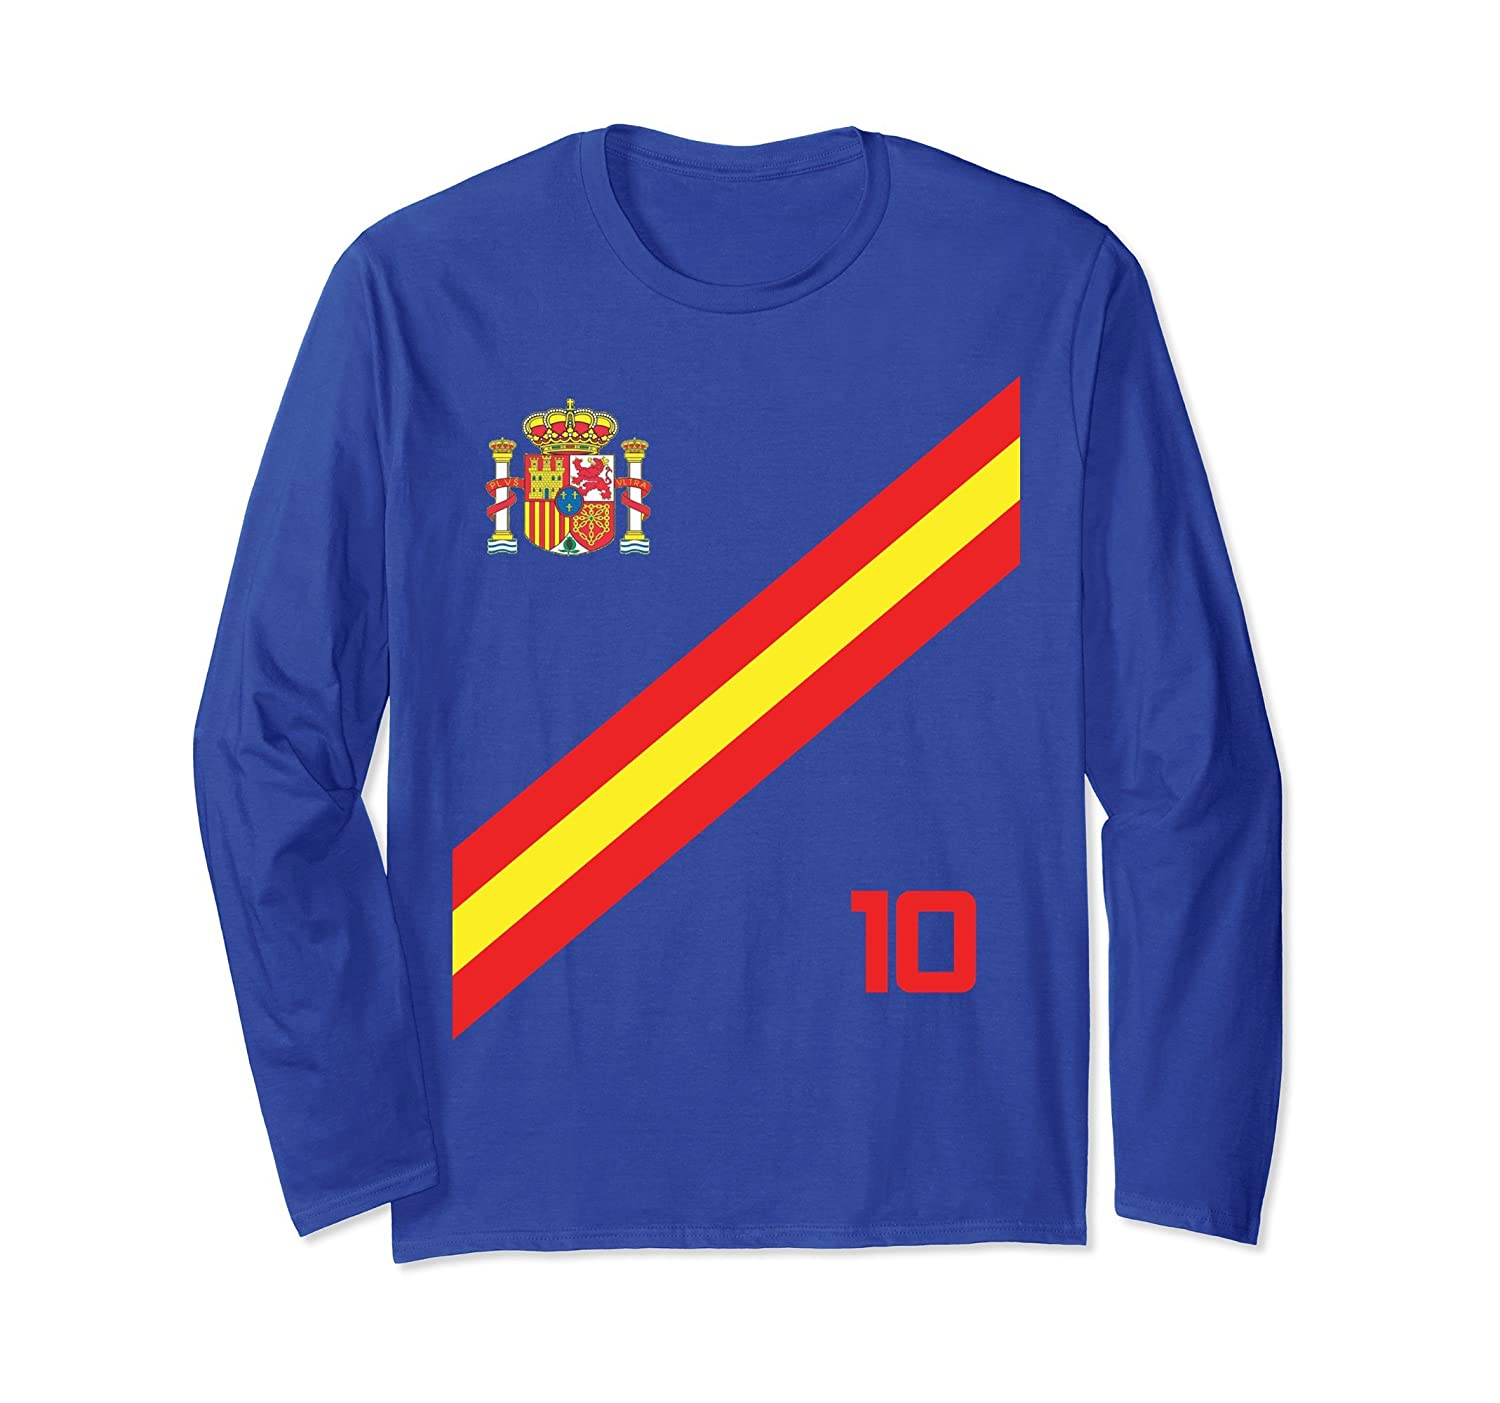 Amazon.com: Spain Soccer Jersey Shirt World Futbol Cup Espana Barca: Clothing